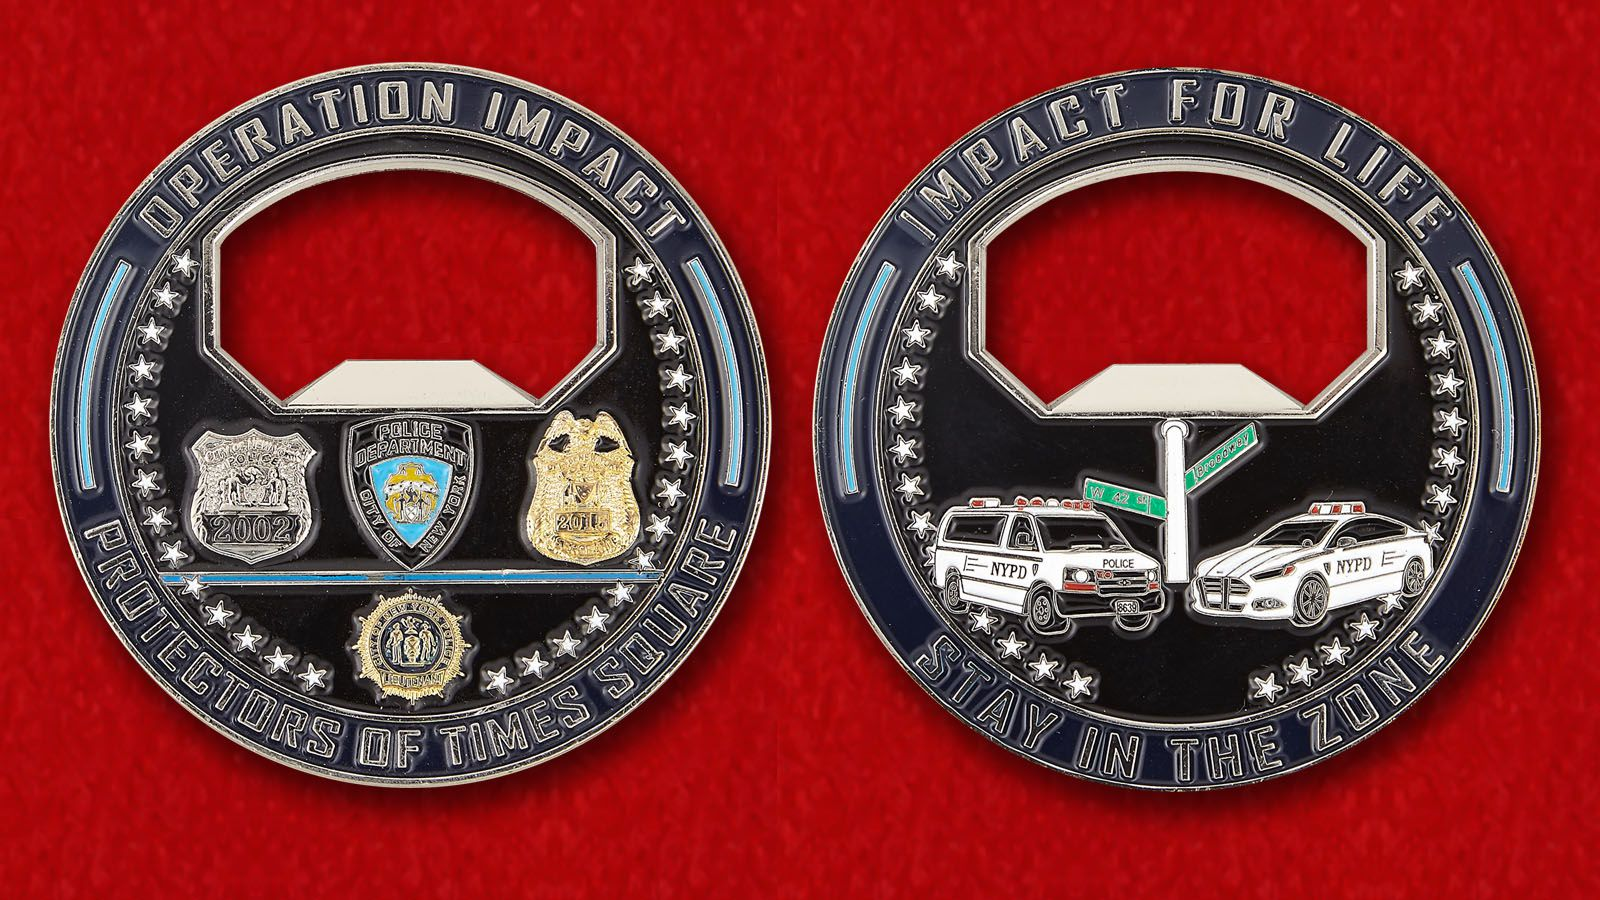 Police Department of New York City Challenge Coin - obverse and reverse